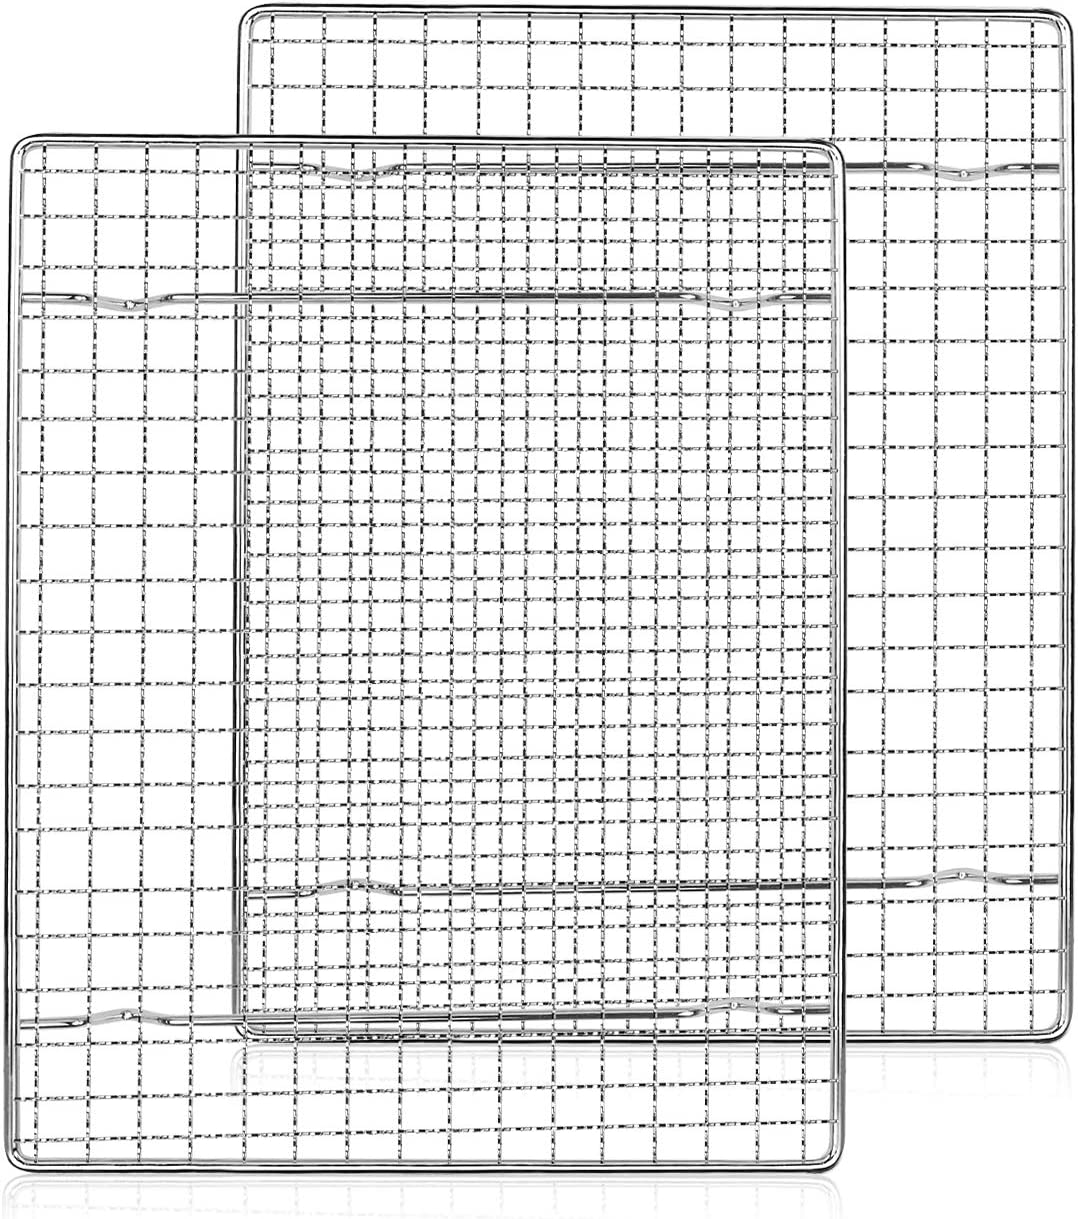 """Sondiko Cooling Rack, Baking Rack, Bacon Rack for Oven, 100% Stainless Steel Thick Wire Fits Quarter Sheet Baking Pan Oven, Grill Safe Rust-Proof for Roasting, Cooking, Baking, Heavy Duty -7.9"""" x 9.8"""""""